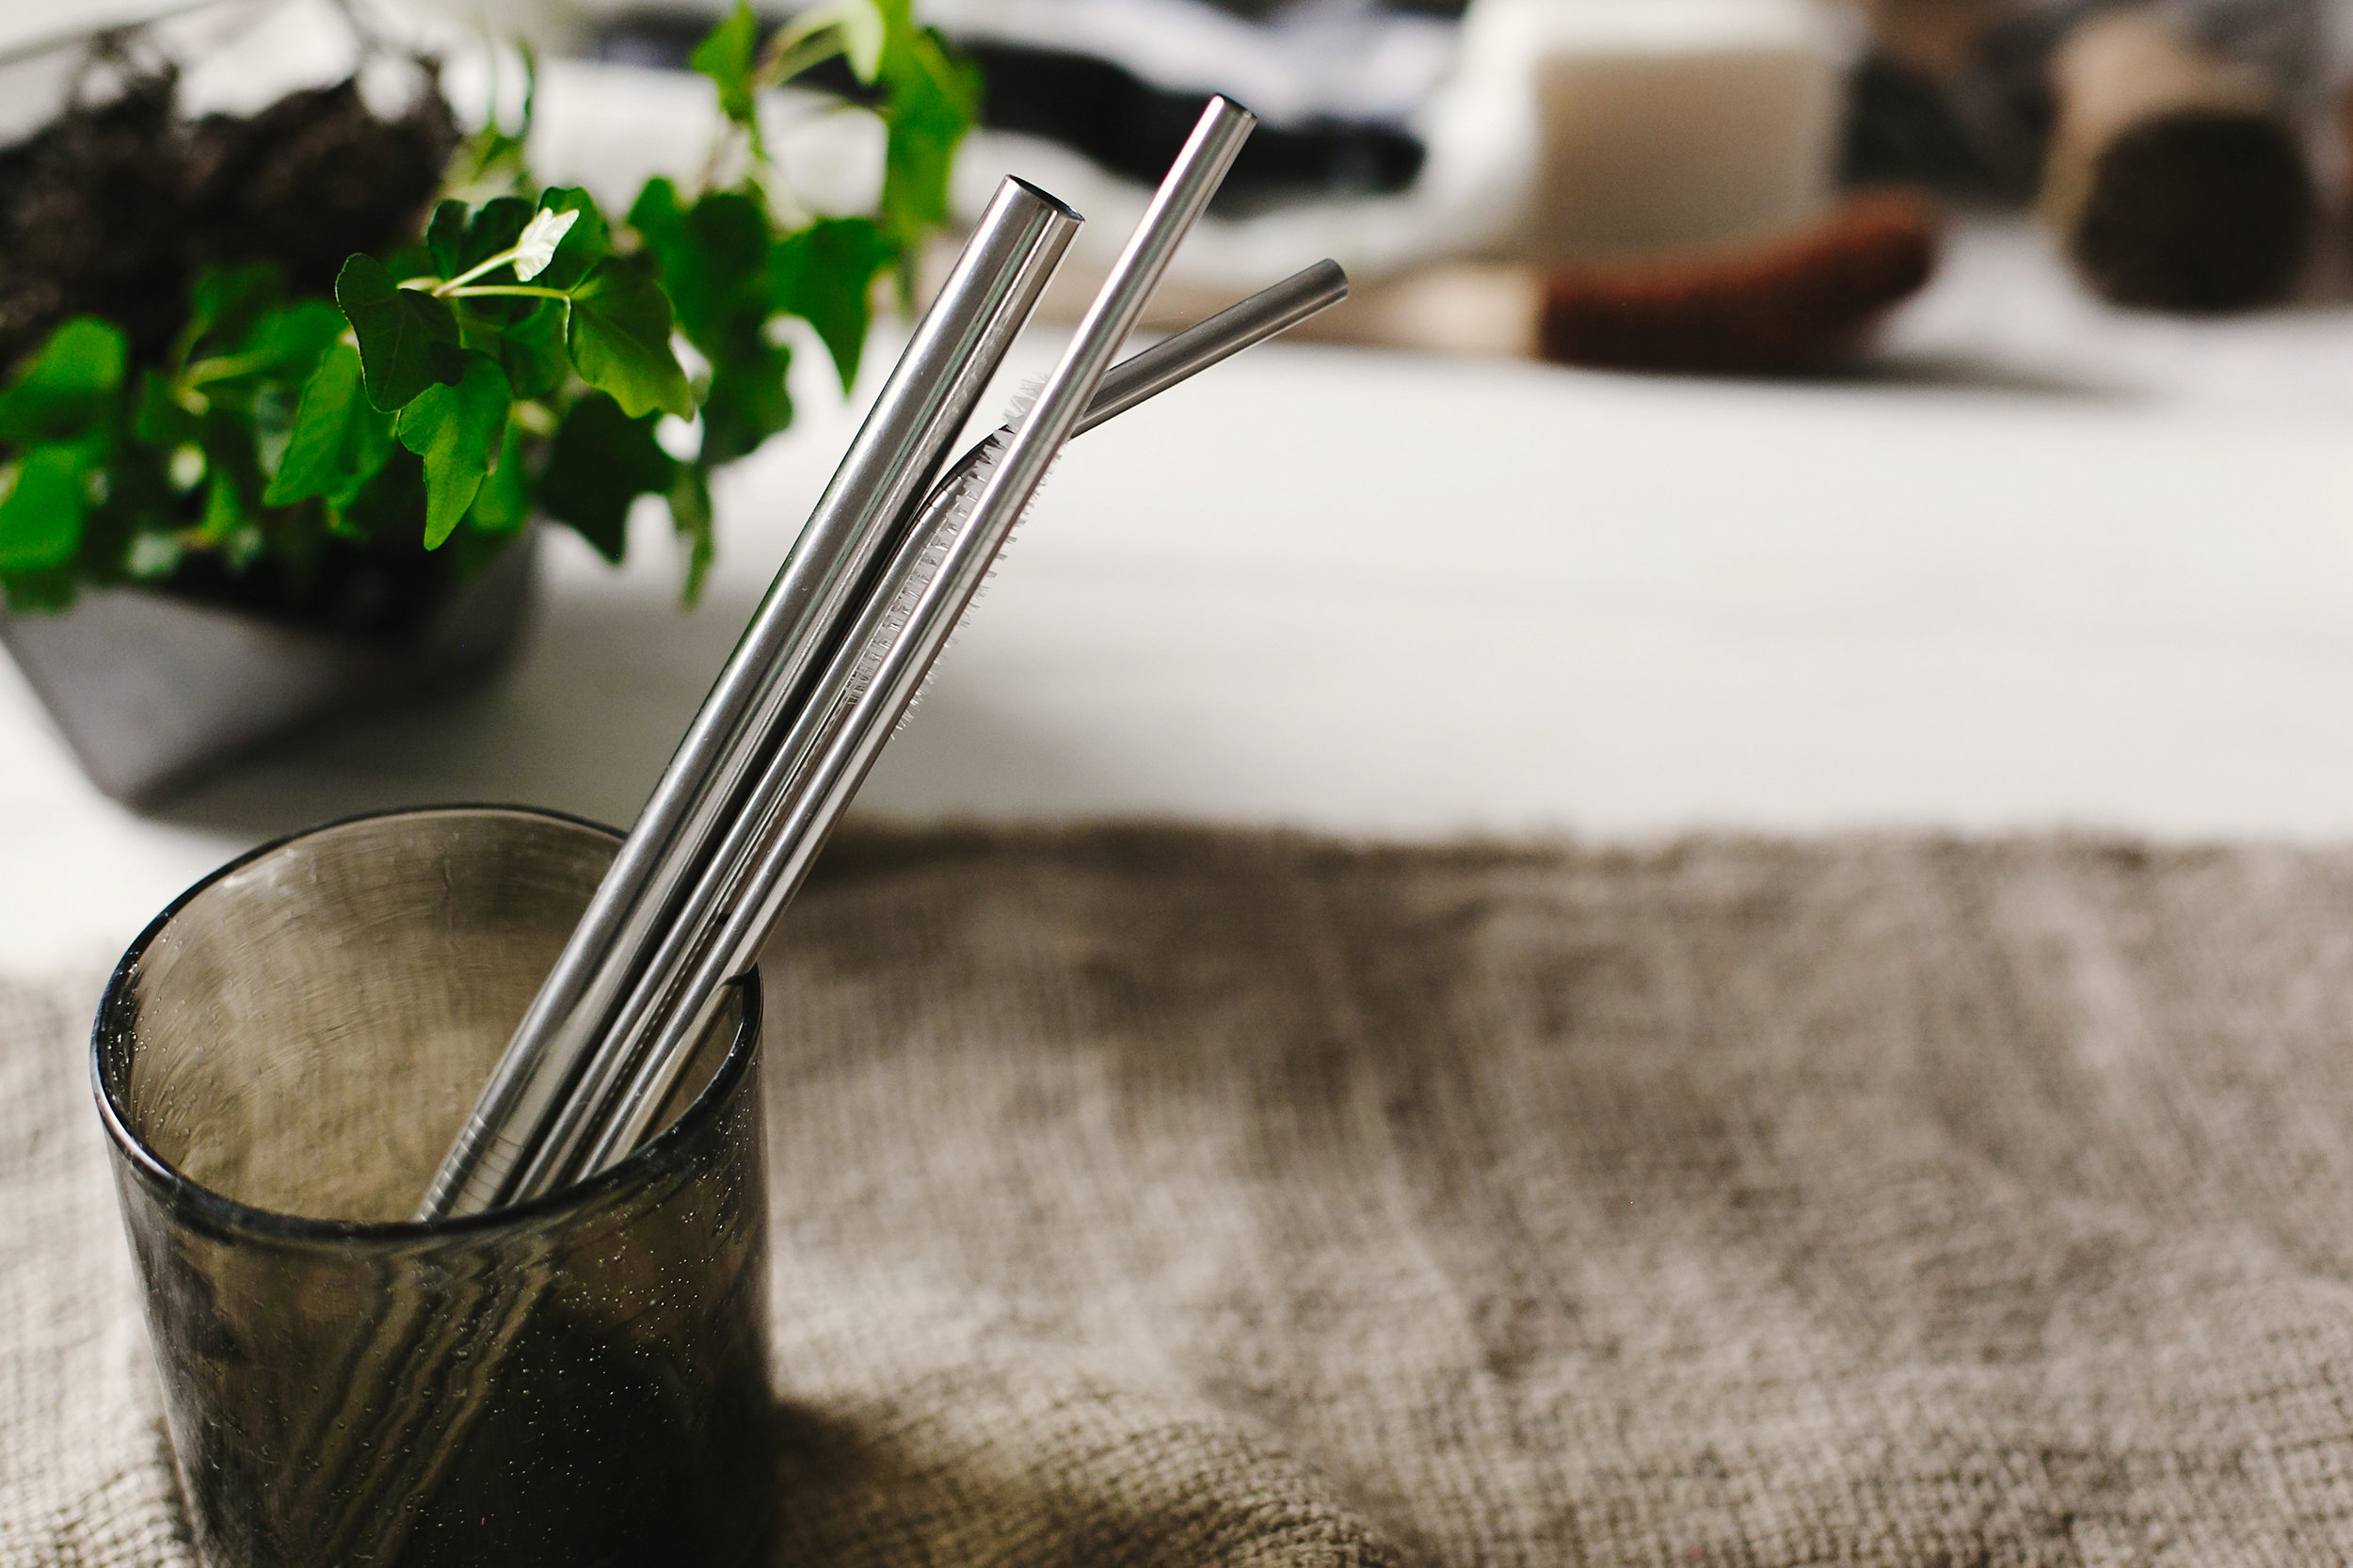 metal straws, via adobe stock photo